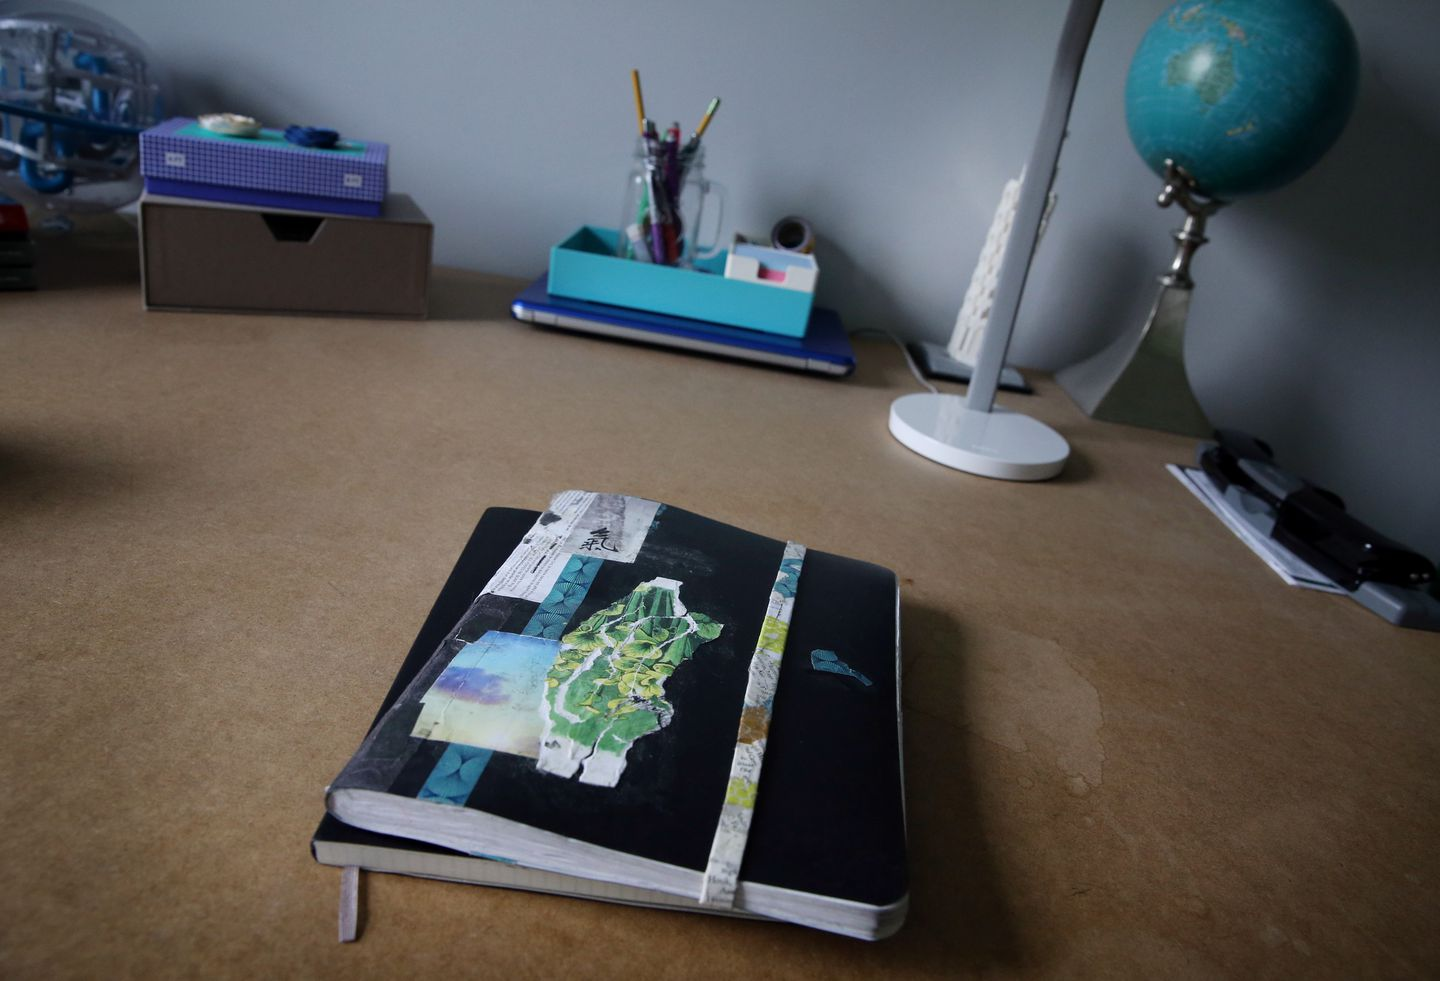 Alexandra's journal on the desk in her bedroom at her North Grafton home. She wrote hundreds of pages, many of them filled with harshly critical words about herself.